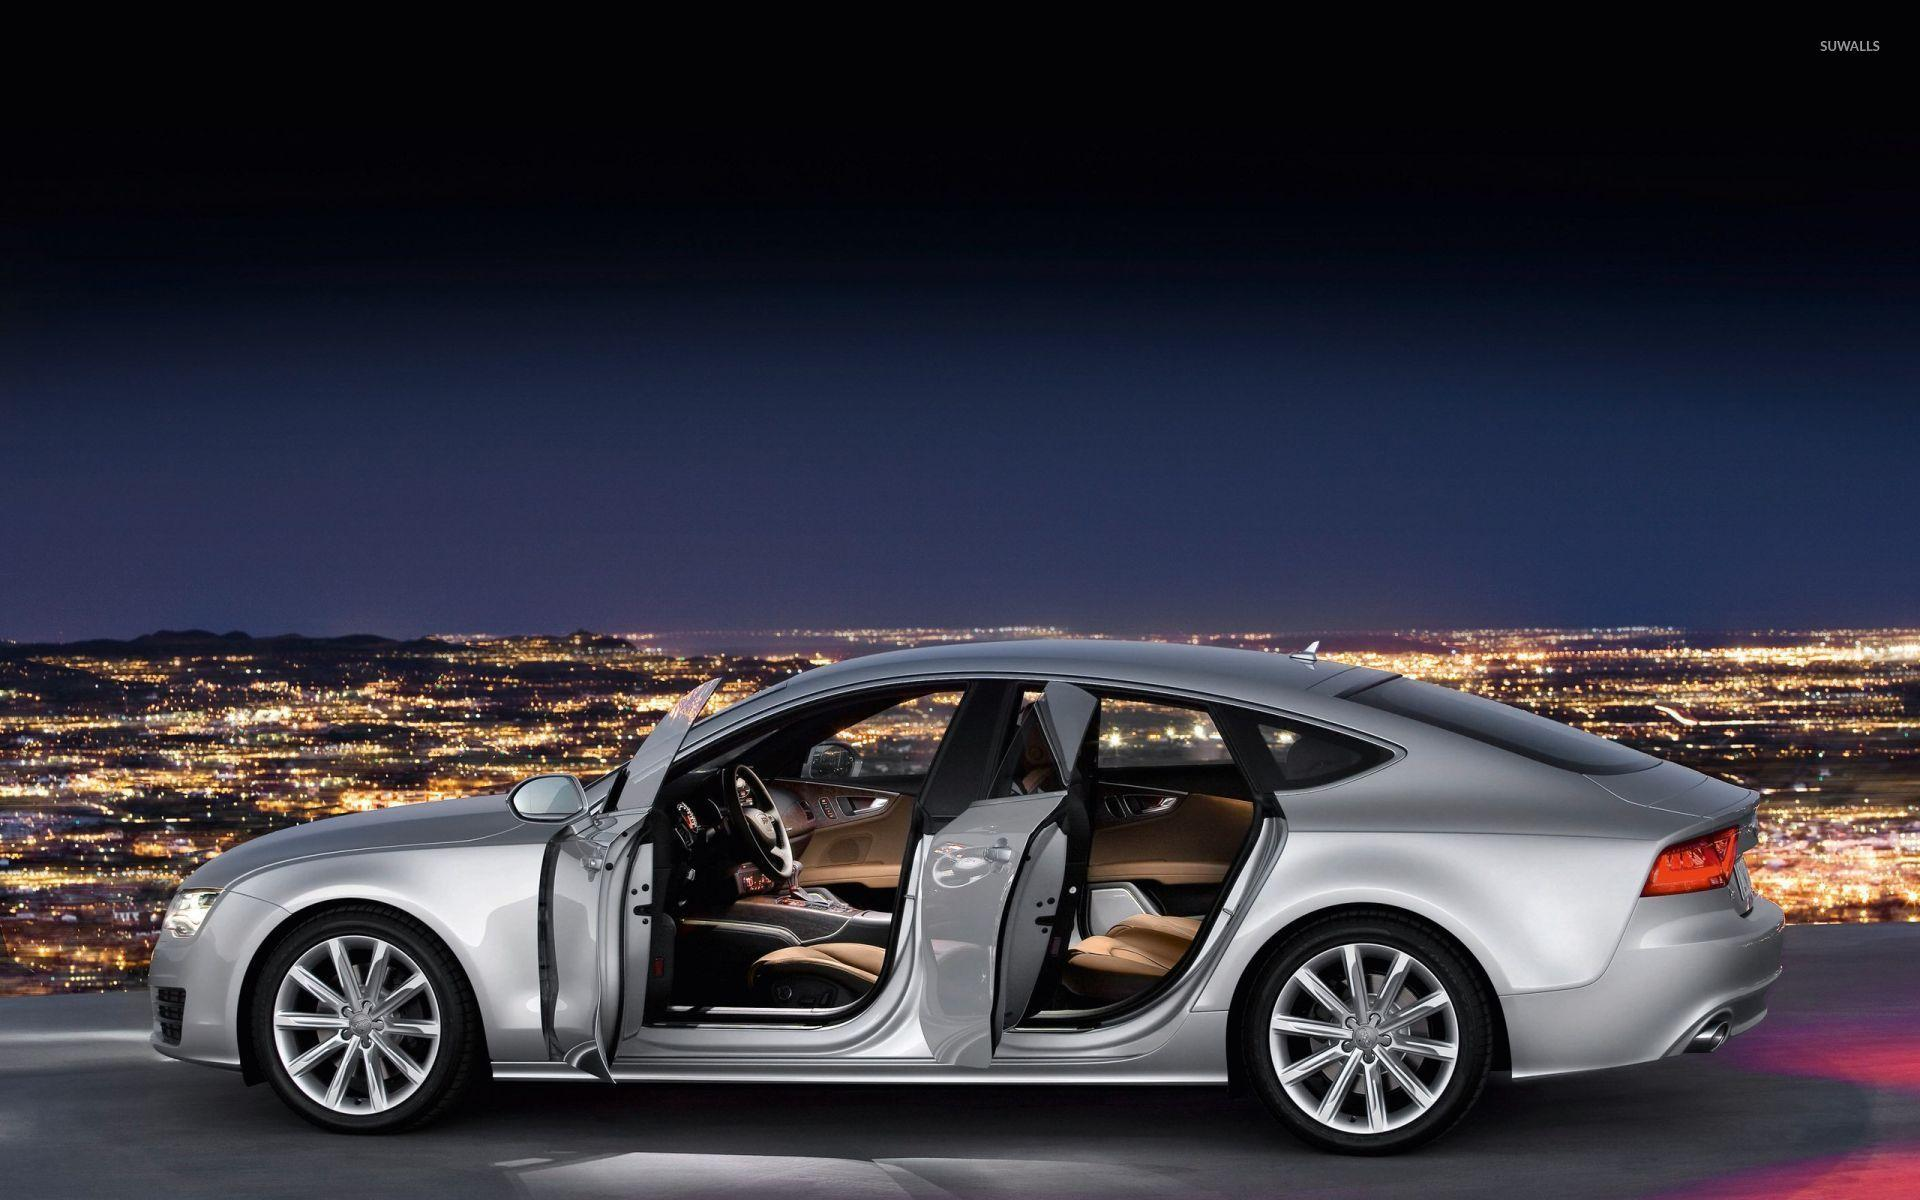 Audi A7 [3] wallpapers